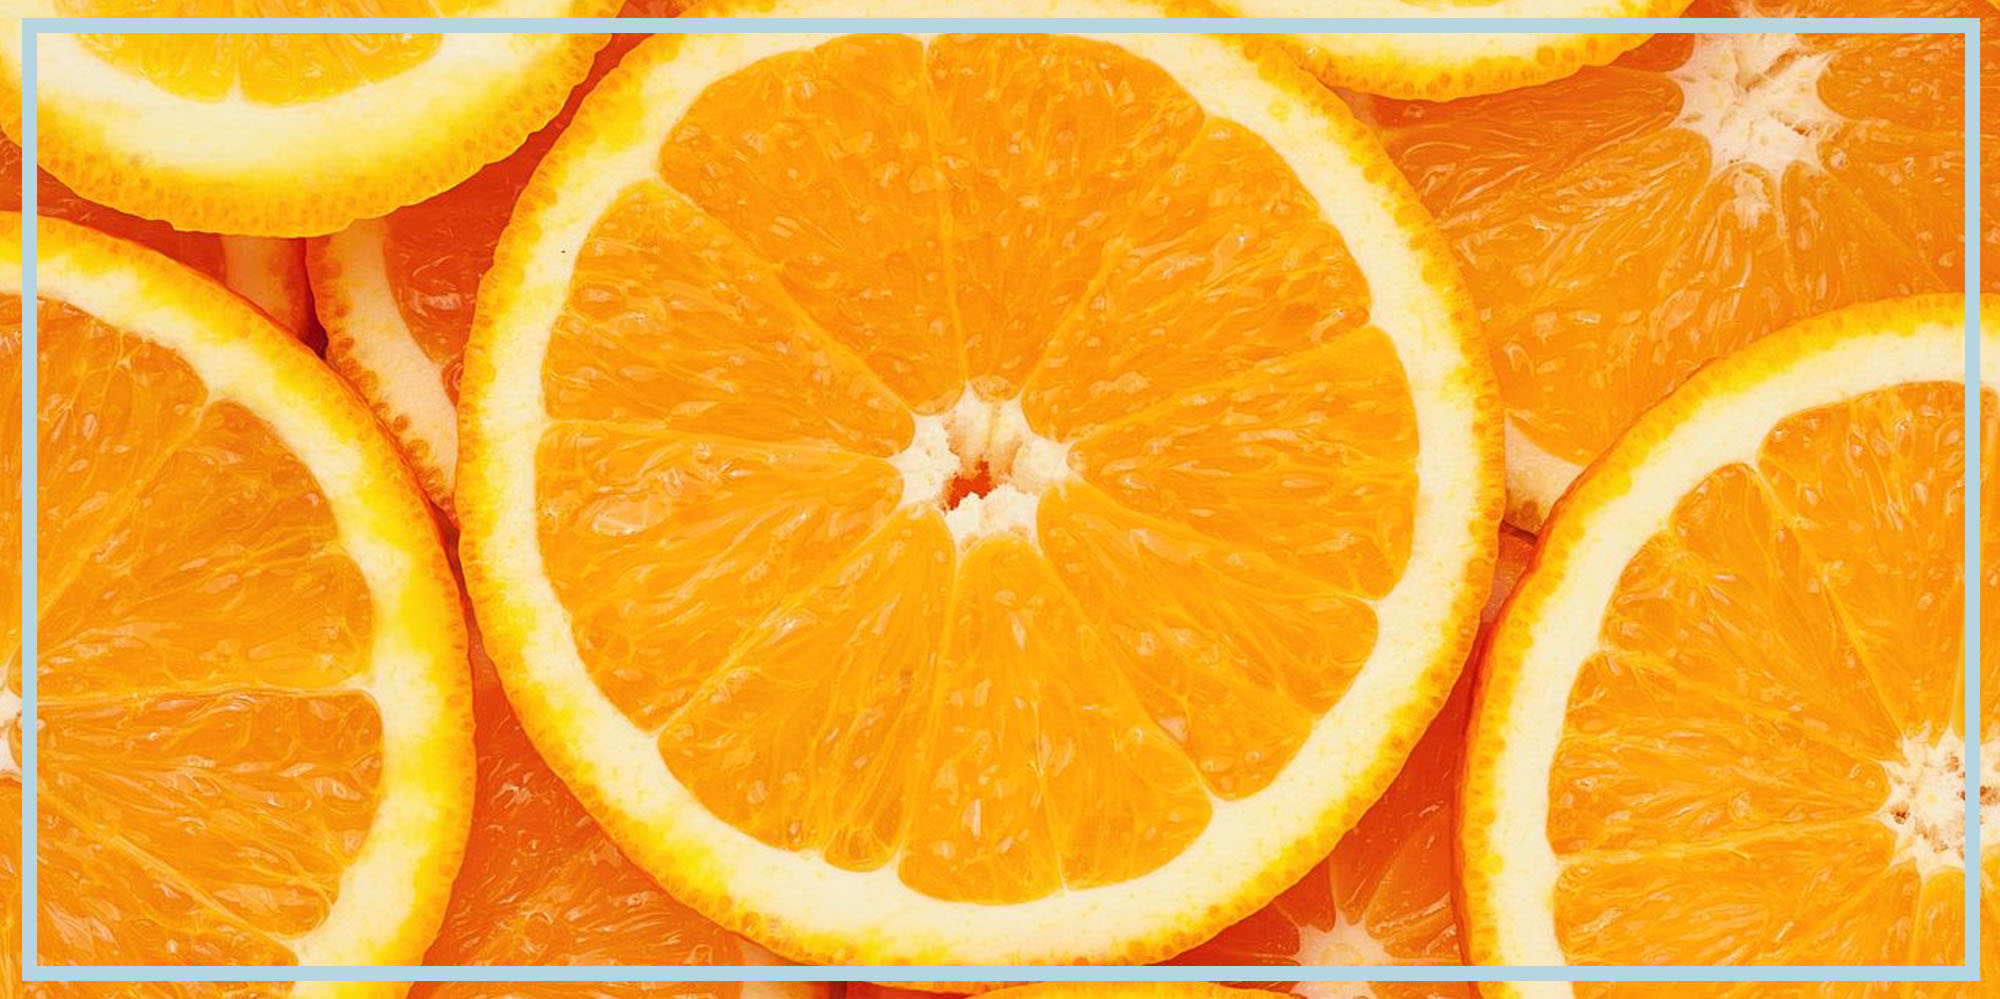 Vitamin C Wiki: Benefits, Uses, Side Effects and Dosage